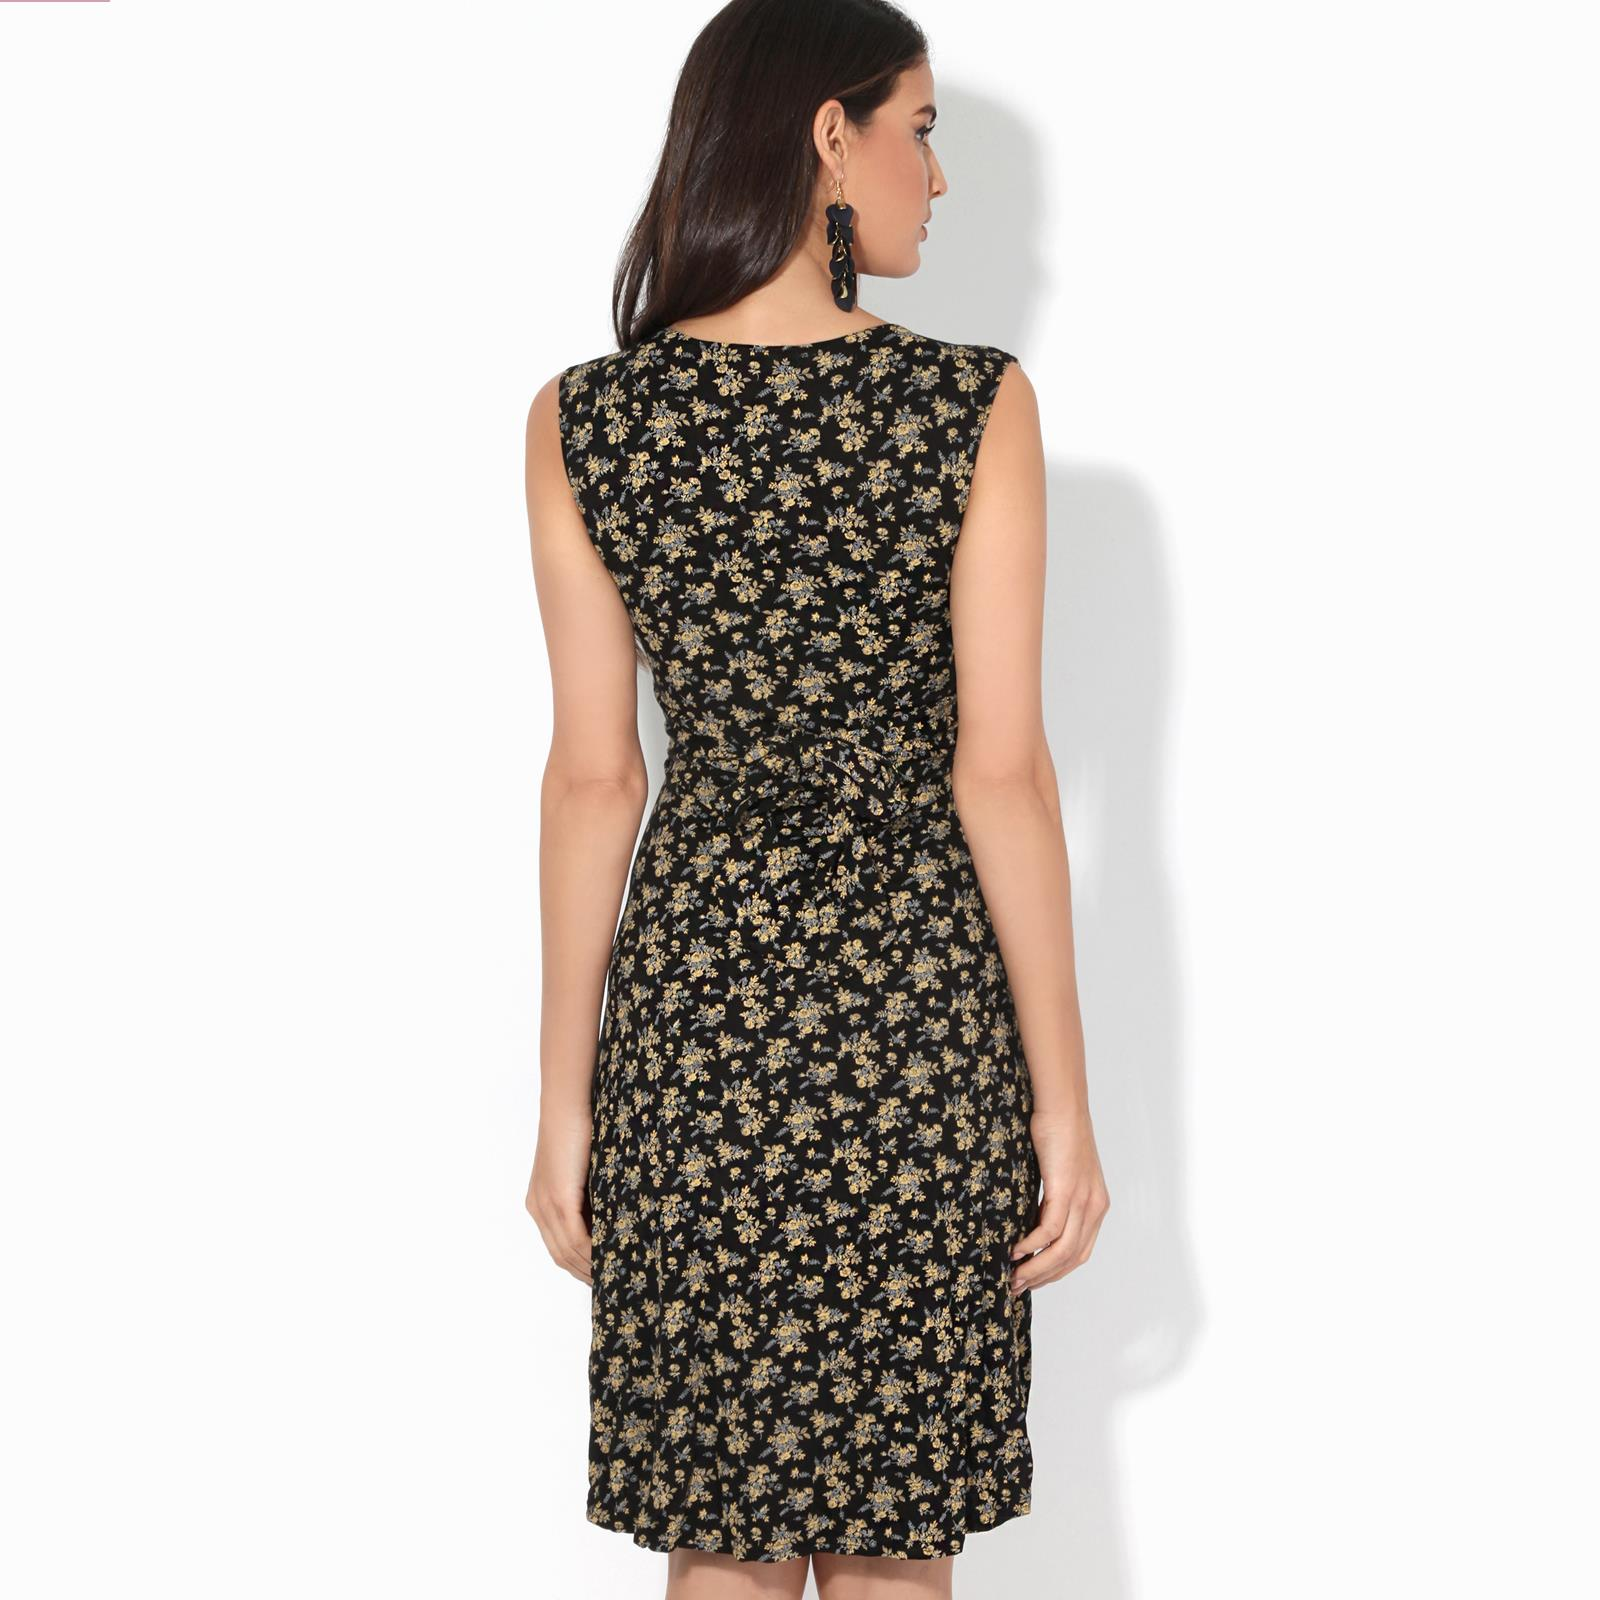 Women-Ladies-Floral-Midi-Dress-Pattern-Sleeveless-V-Neck-Stretch-Casual-Sundress thumbnail 7